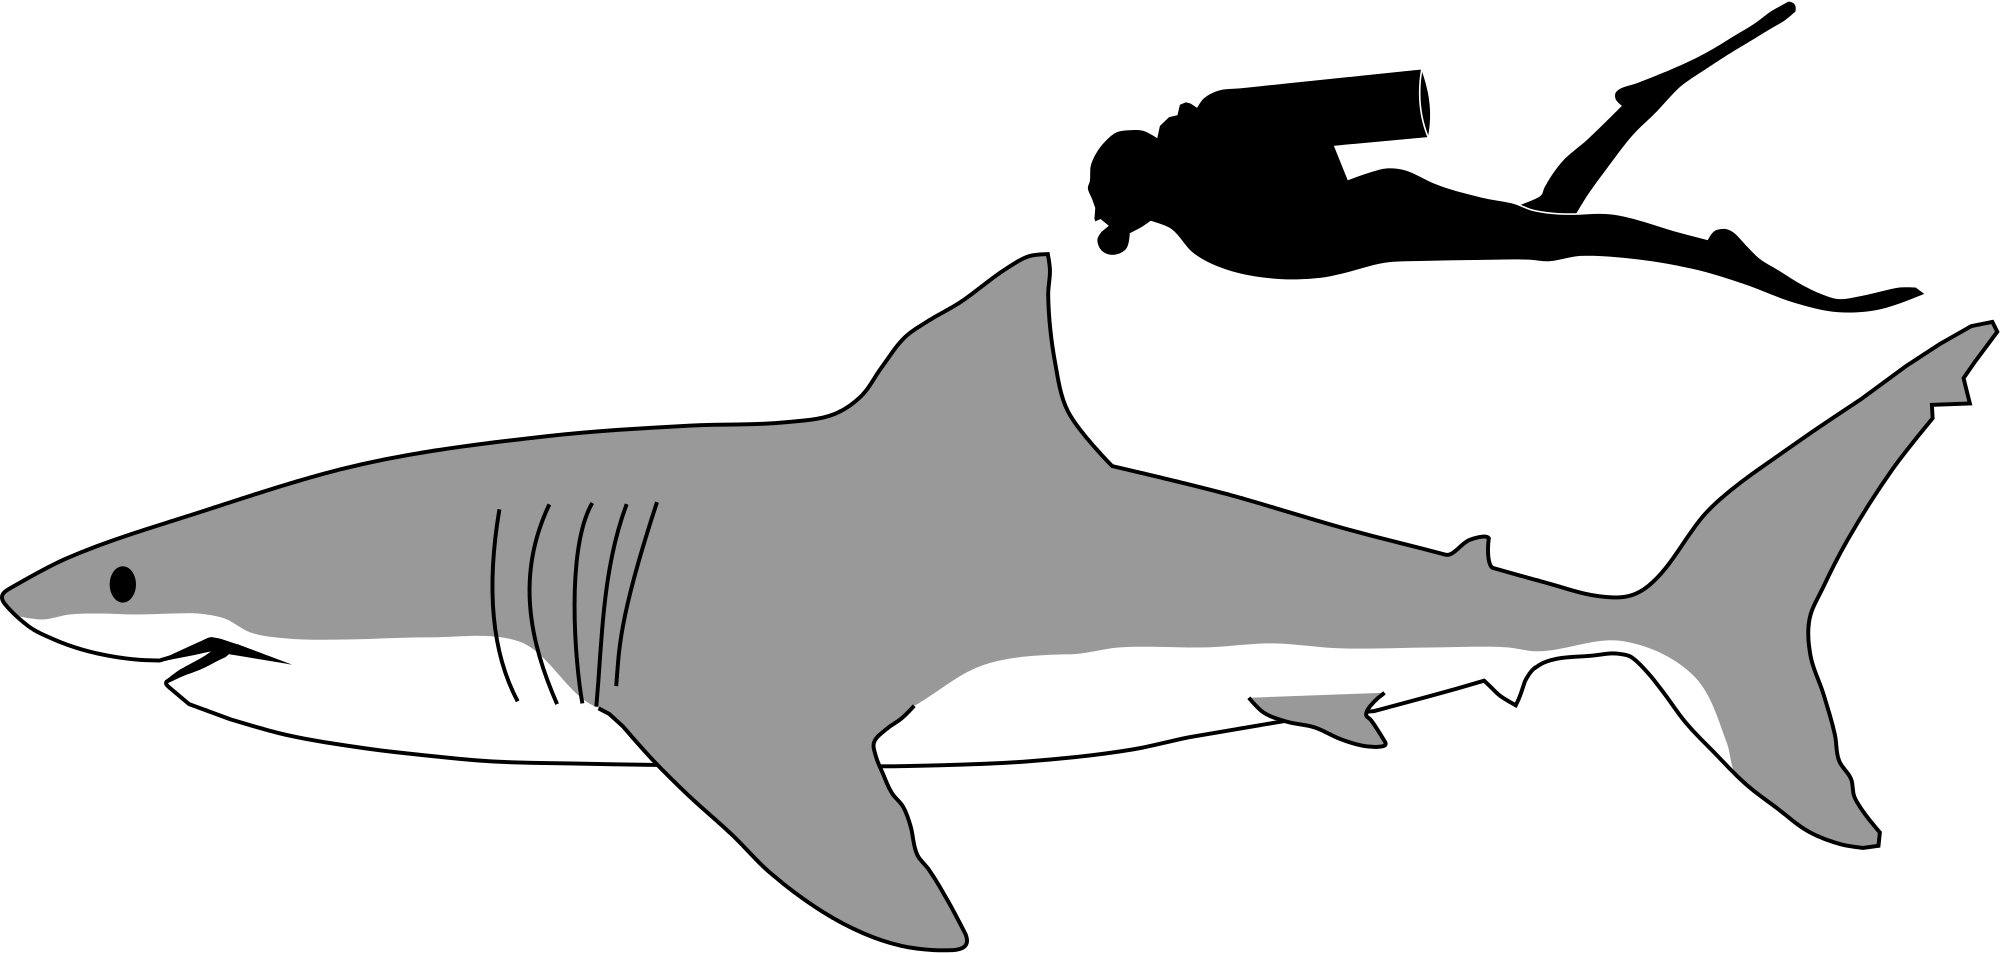 Leopard Shark clipart #6, Download drawings